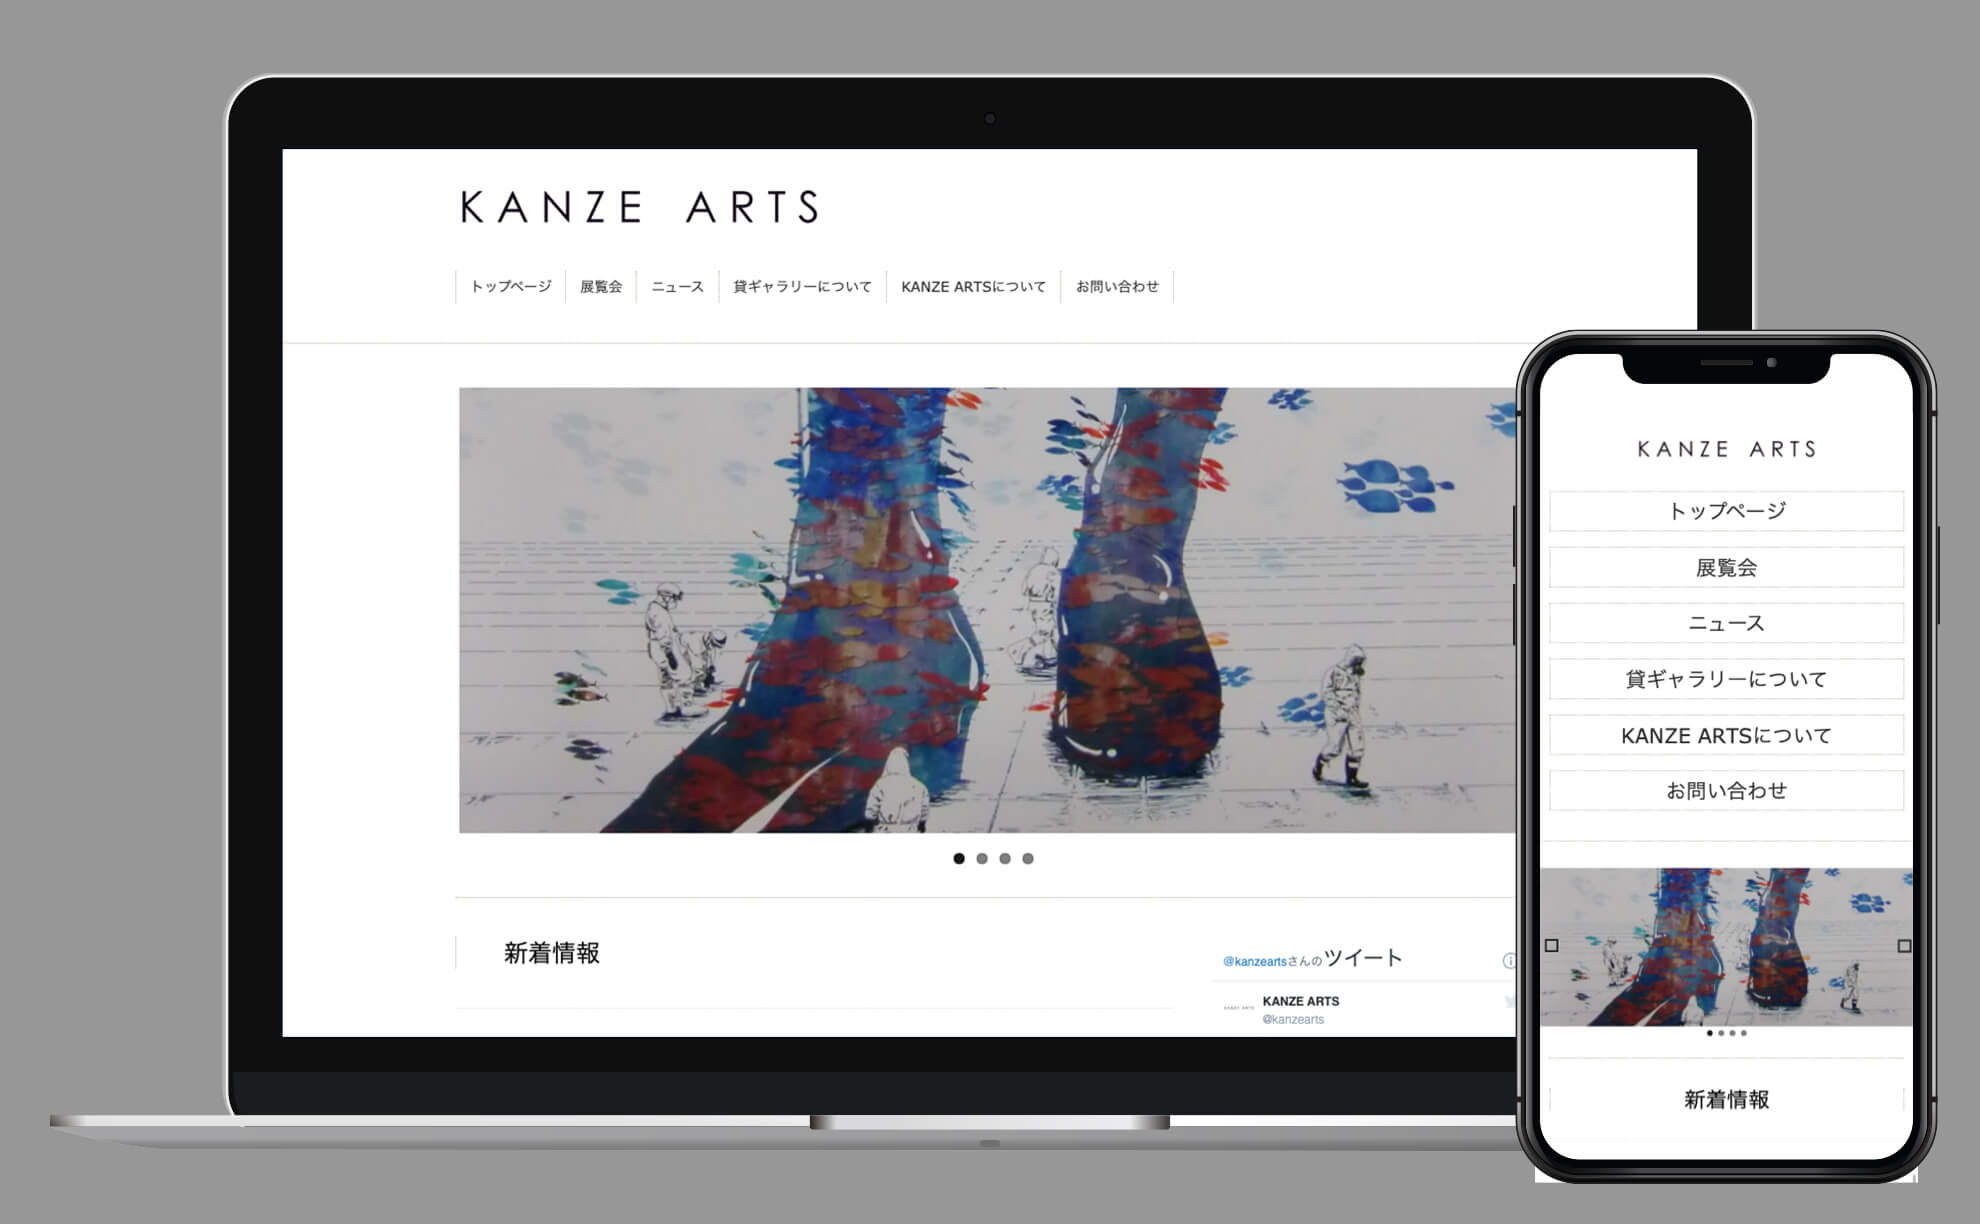 KANZE ARTS